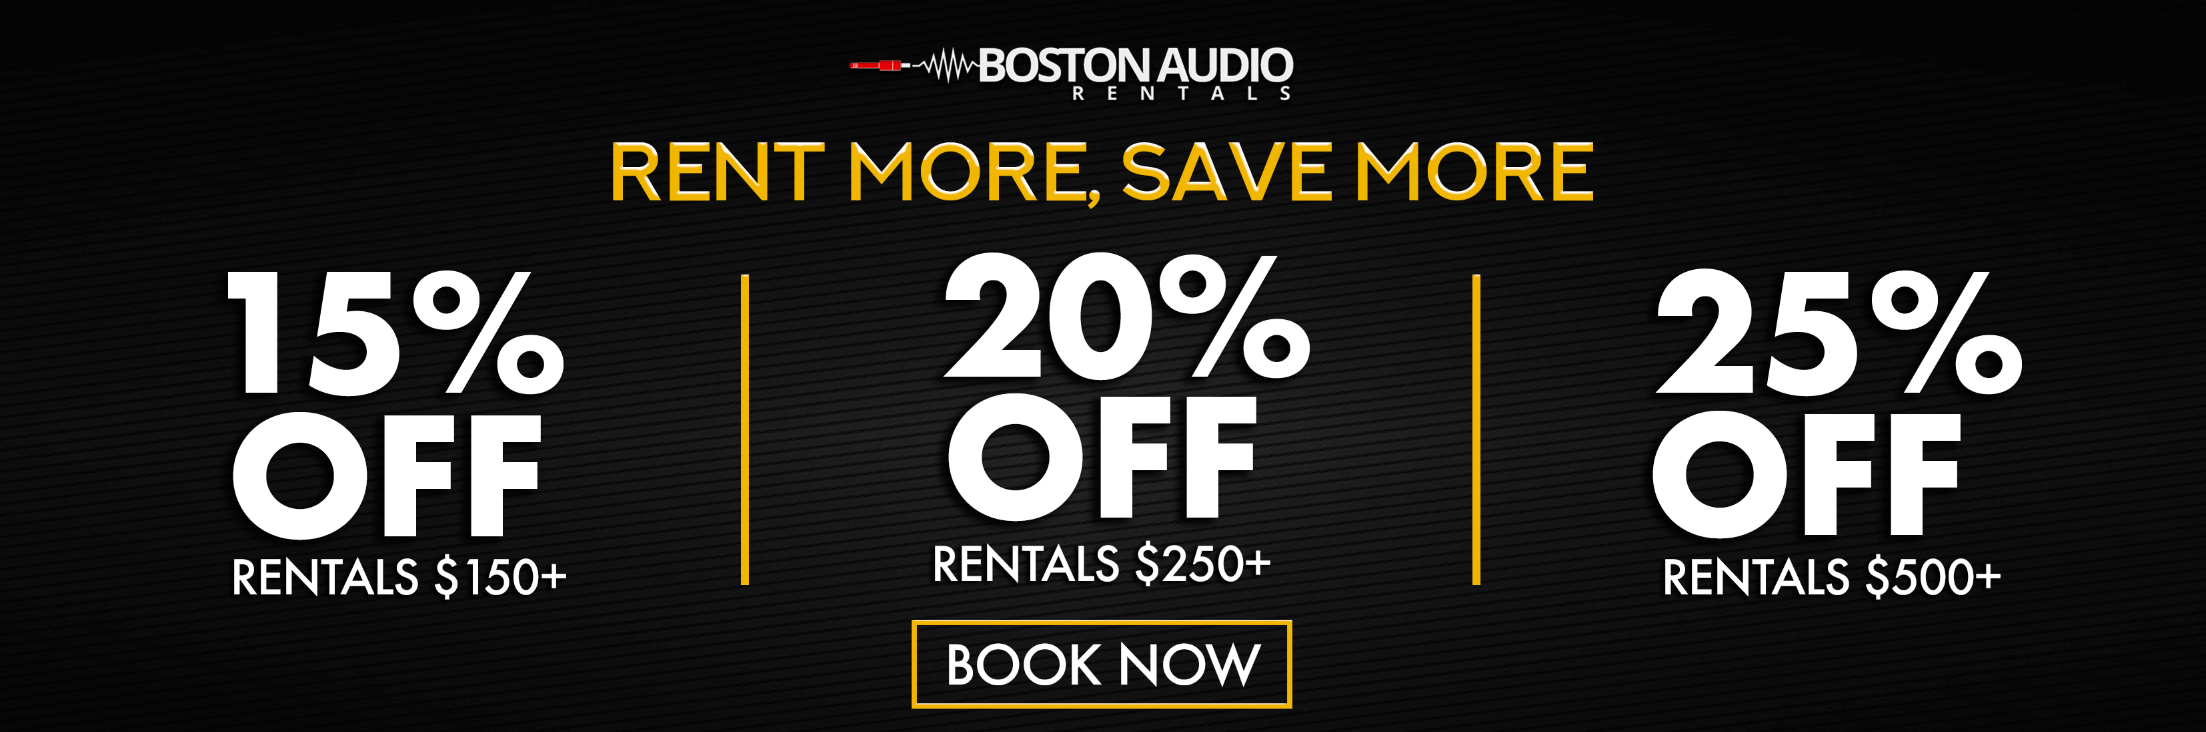 Boston Audio Rentals - Rent Sound Systems, Projectors